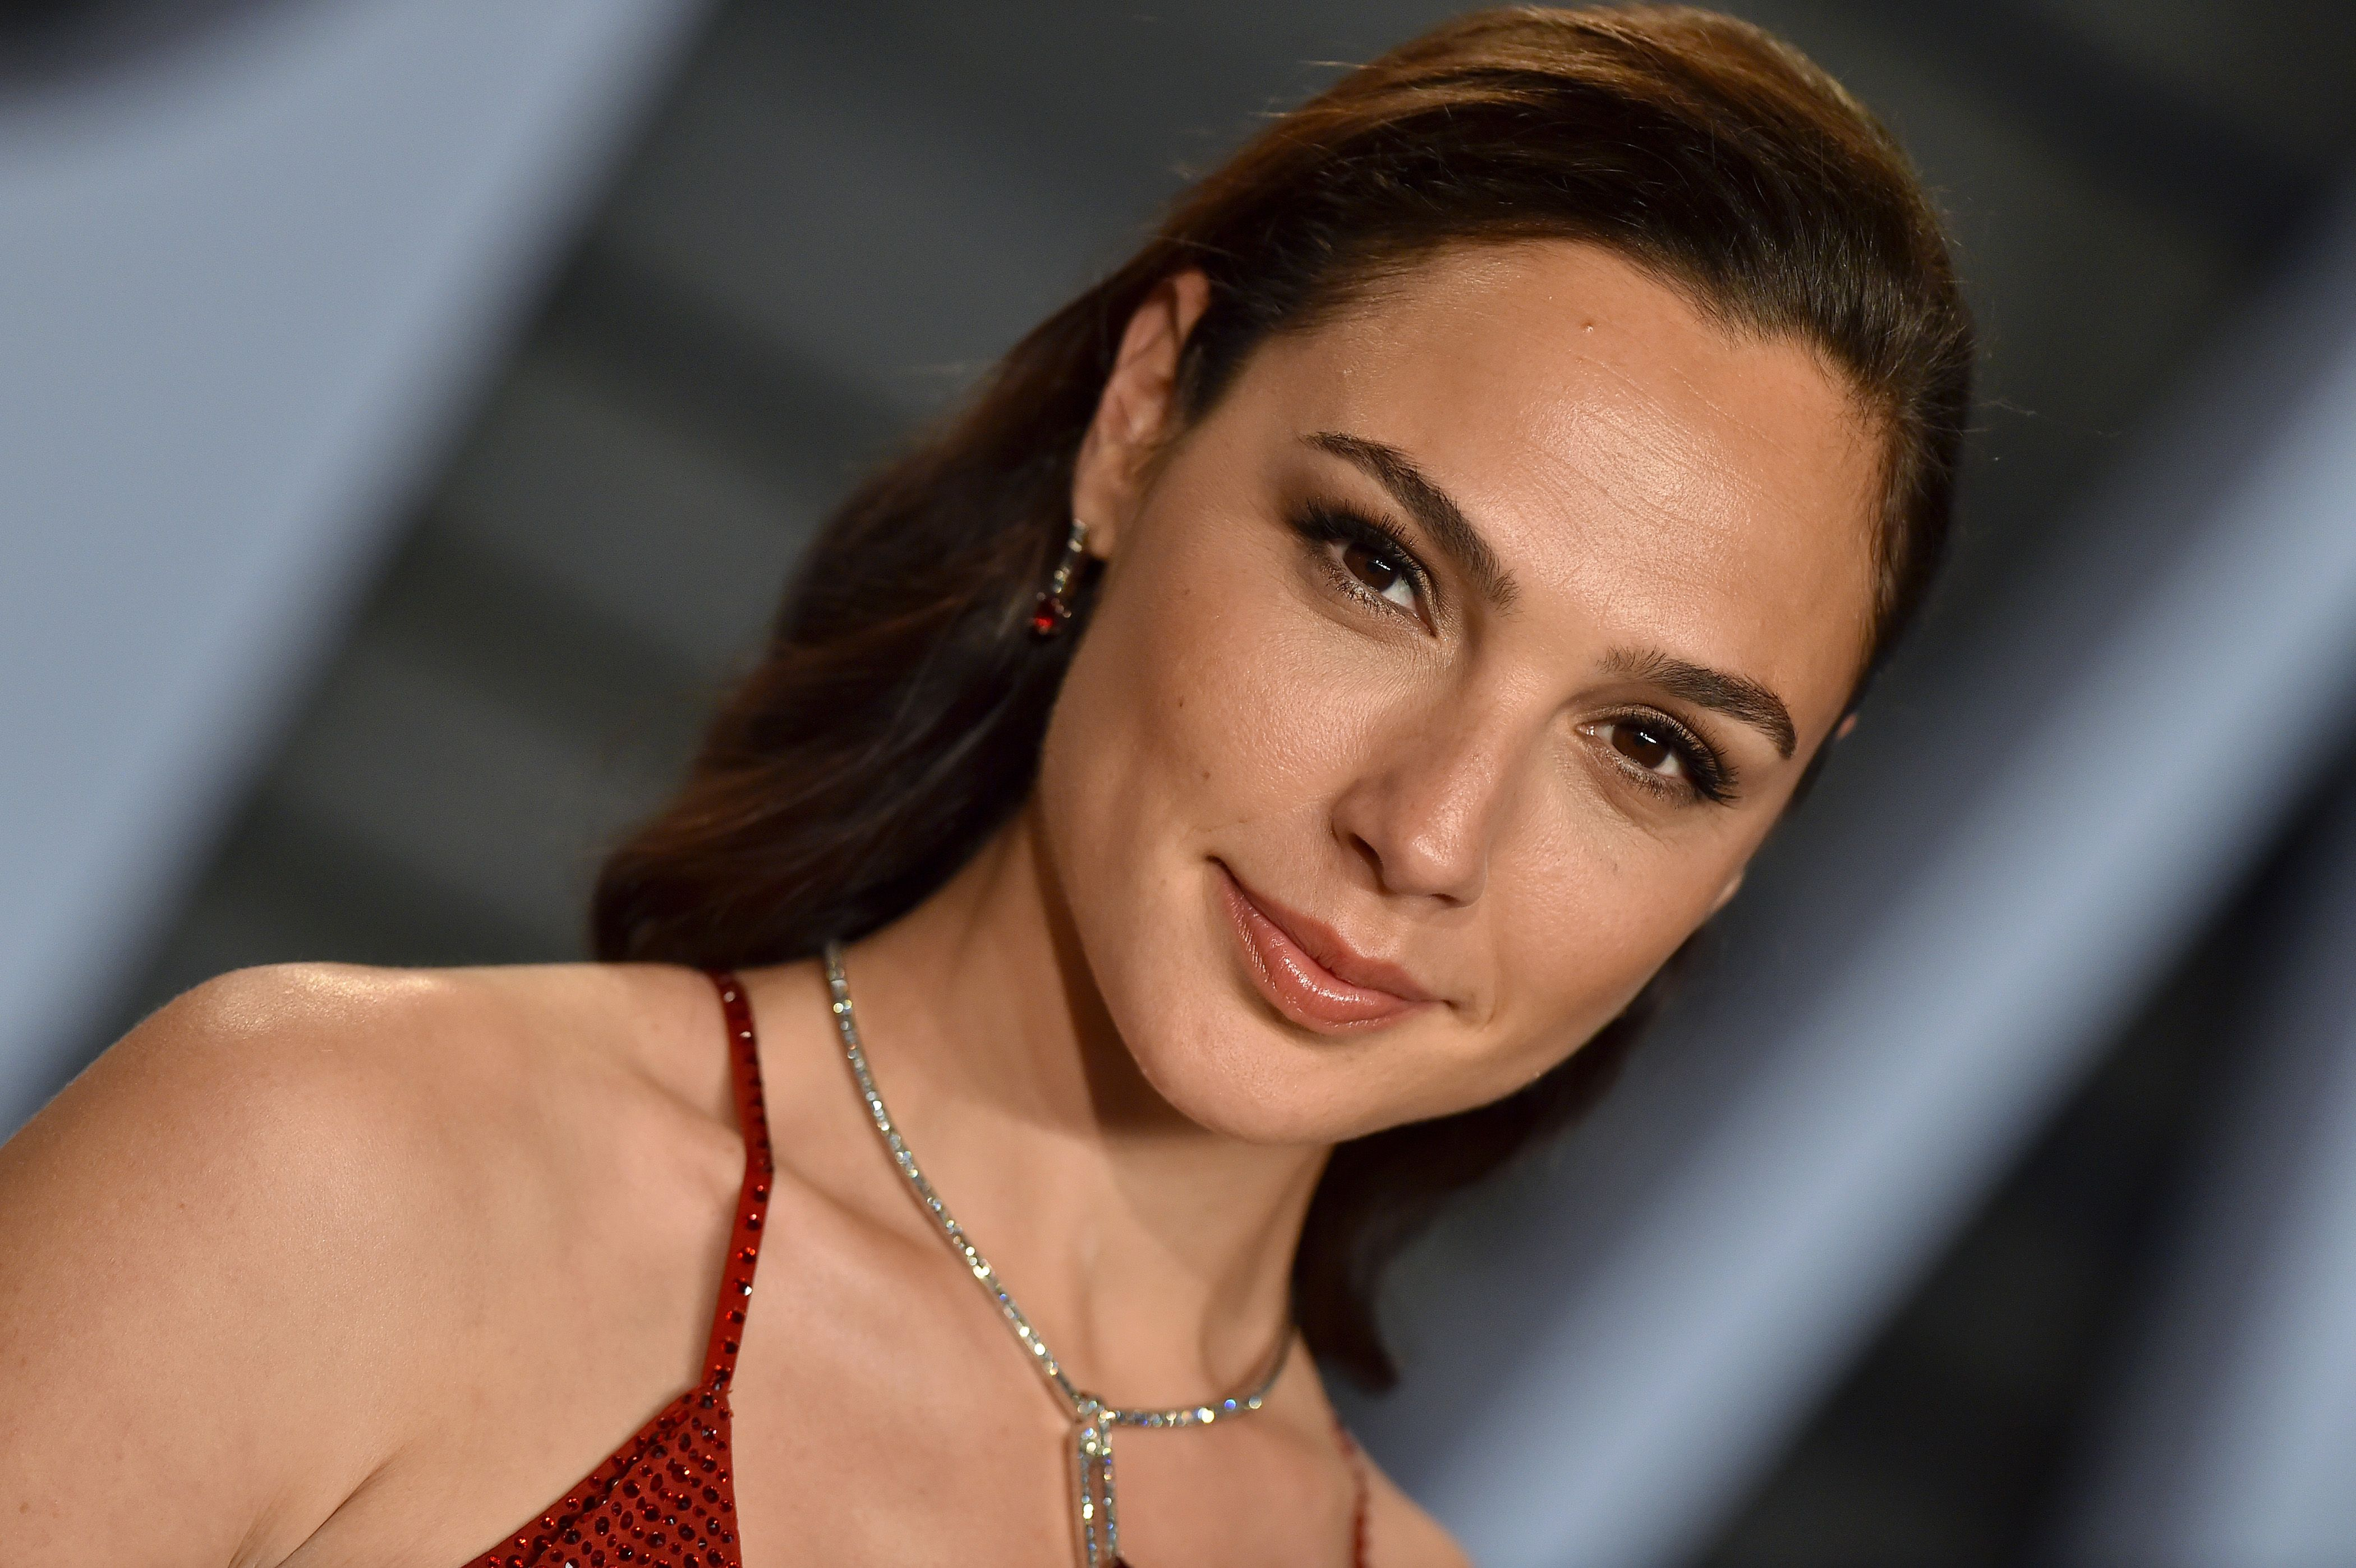 Wonder Woman's Gal Gadot got a curly bob and we're obsessed